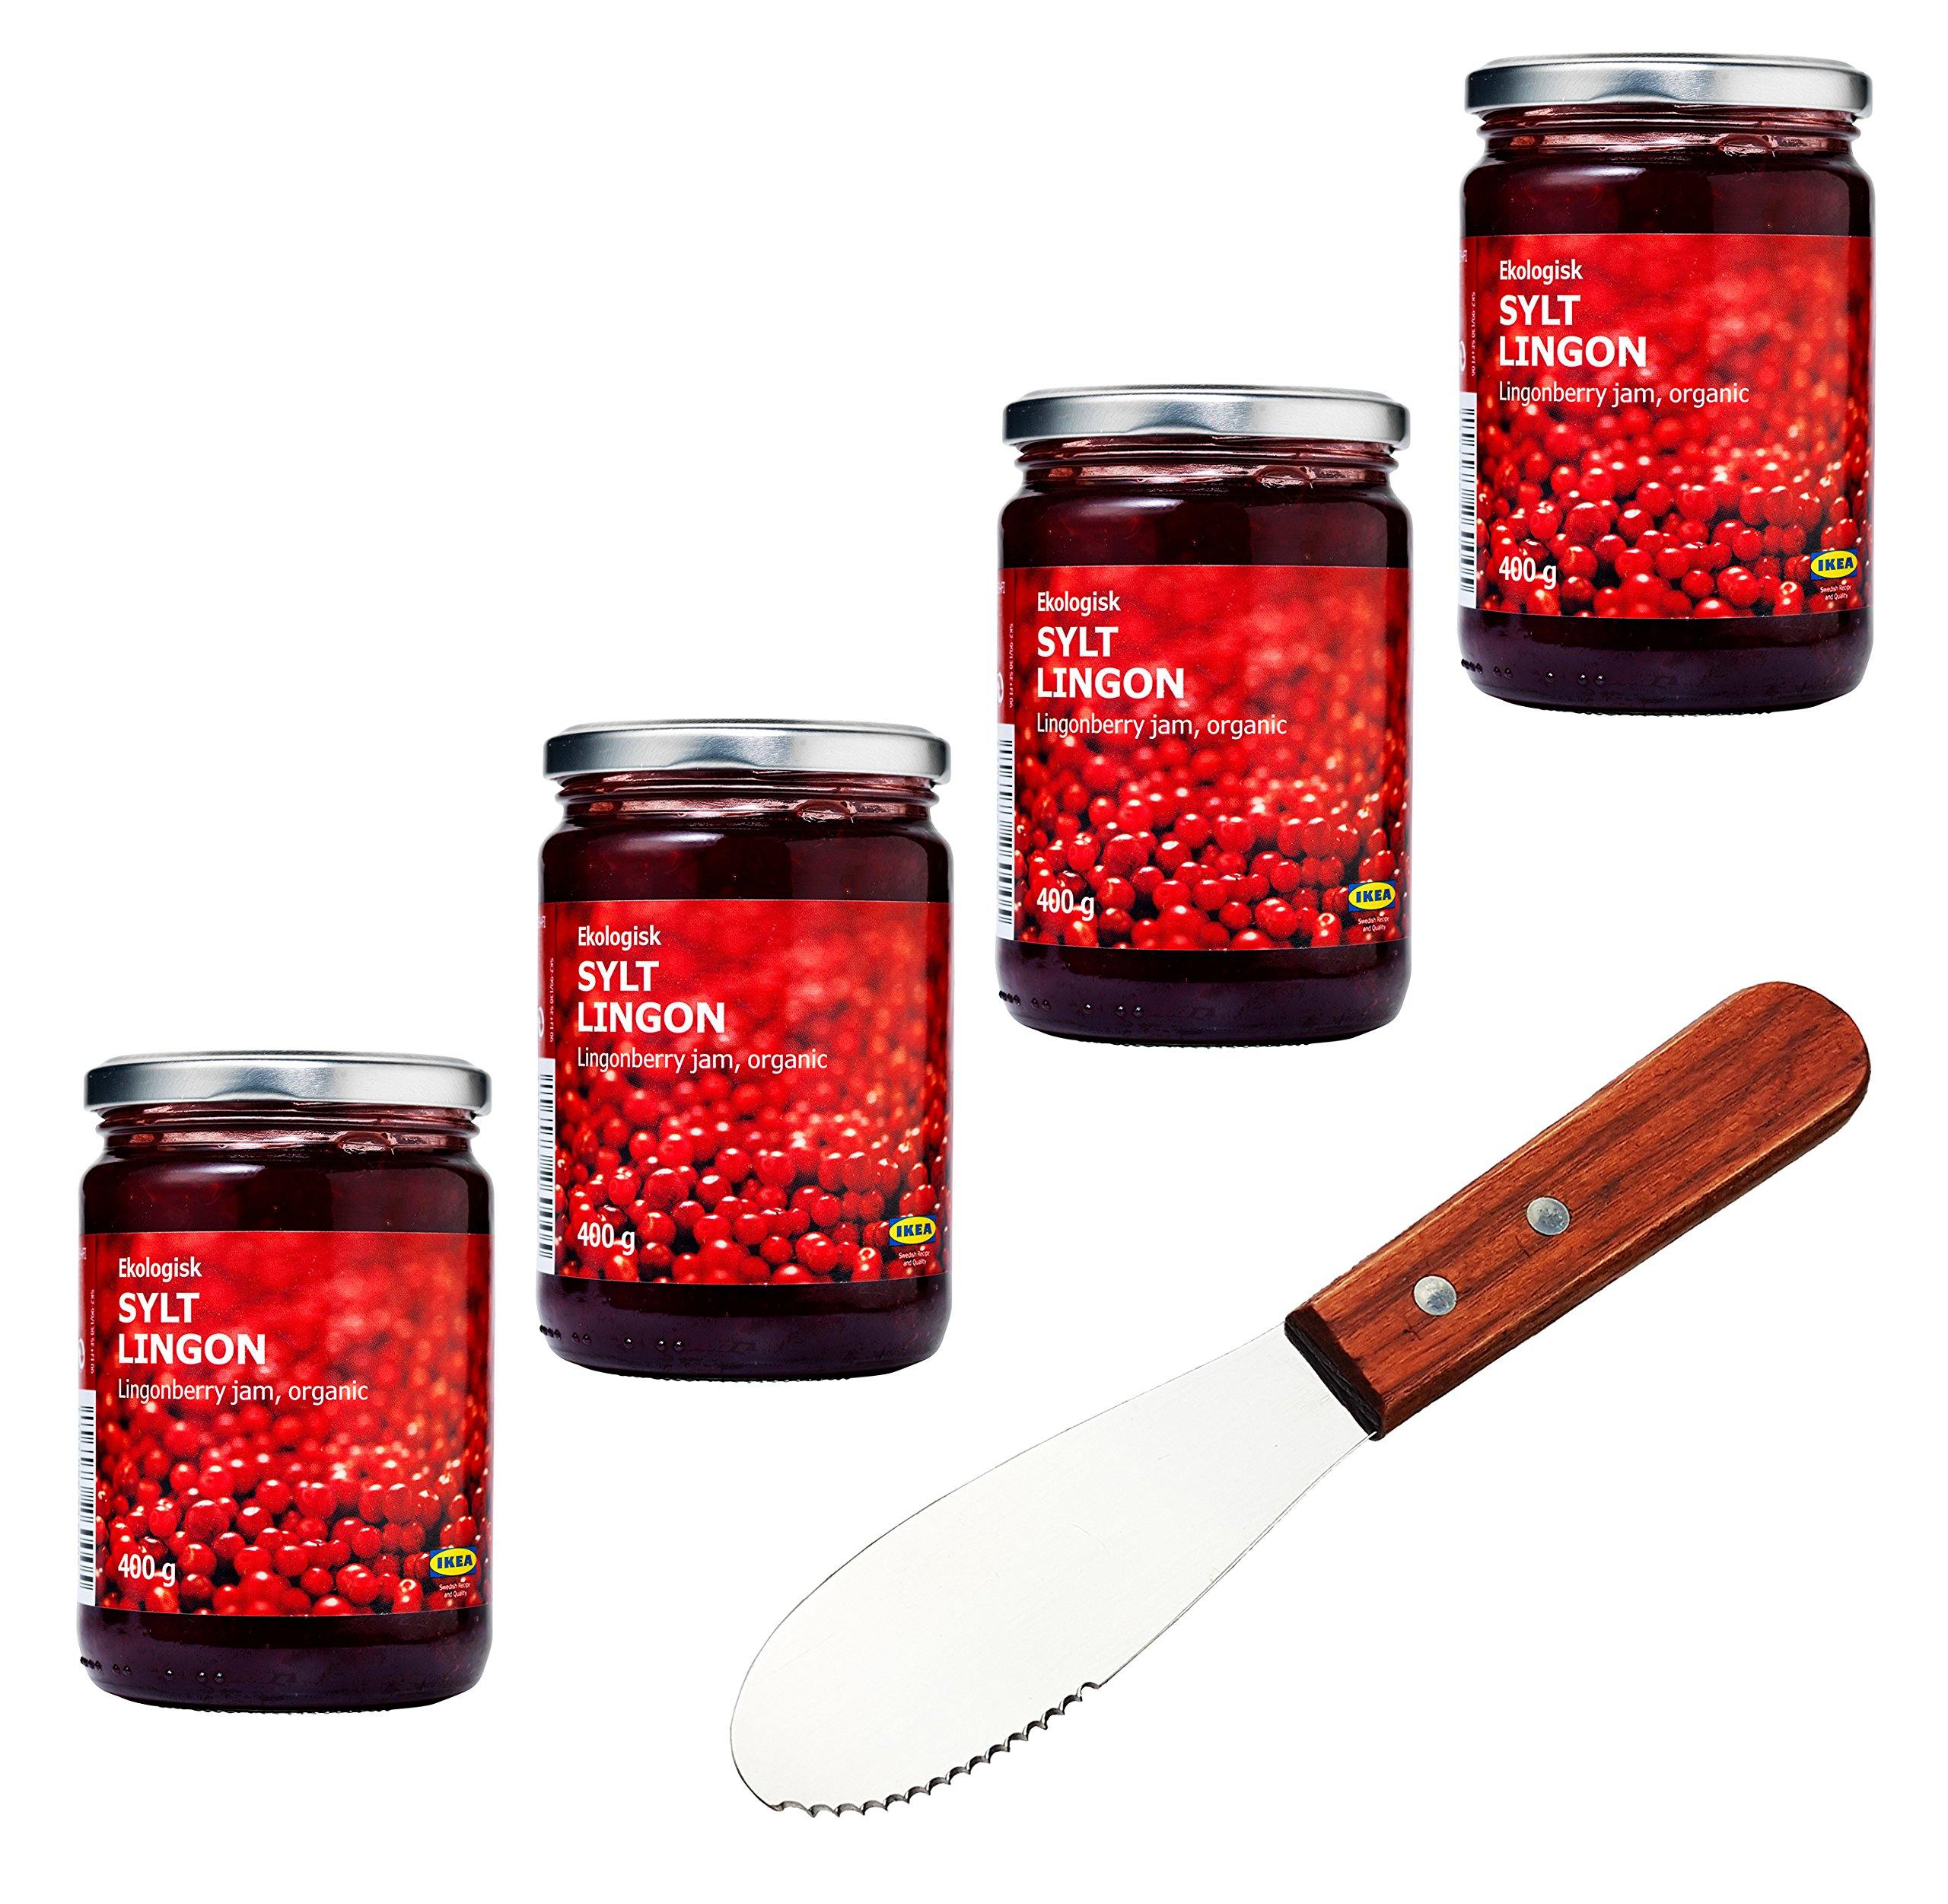 IKEA Organic Swedish Lingonberry Preserves | Jam - Bundle - With Signature Home Kitchen Spreader Knife - Pack of 4 by IKEA